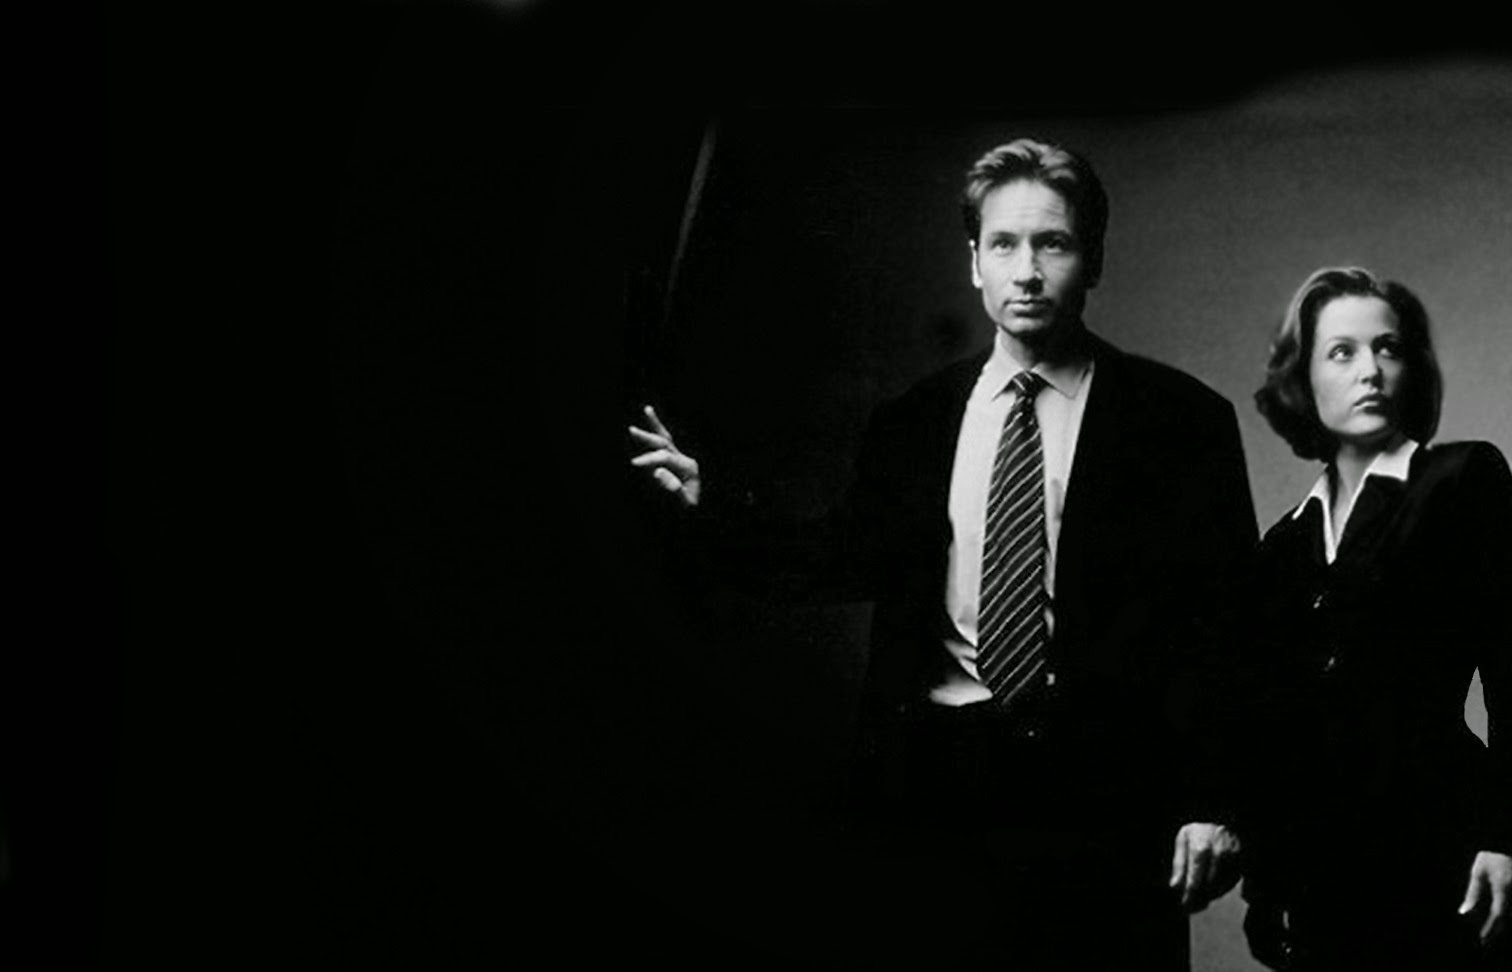 The X-Files returns to TV with 6 episodes